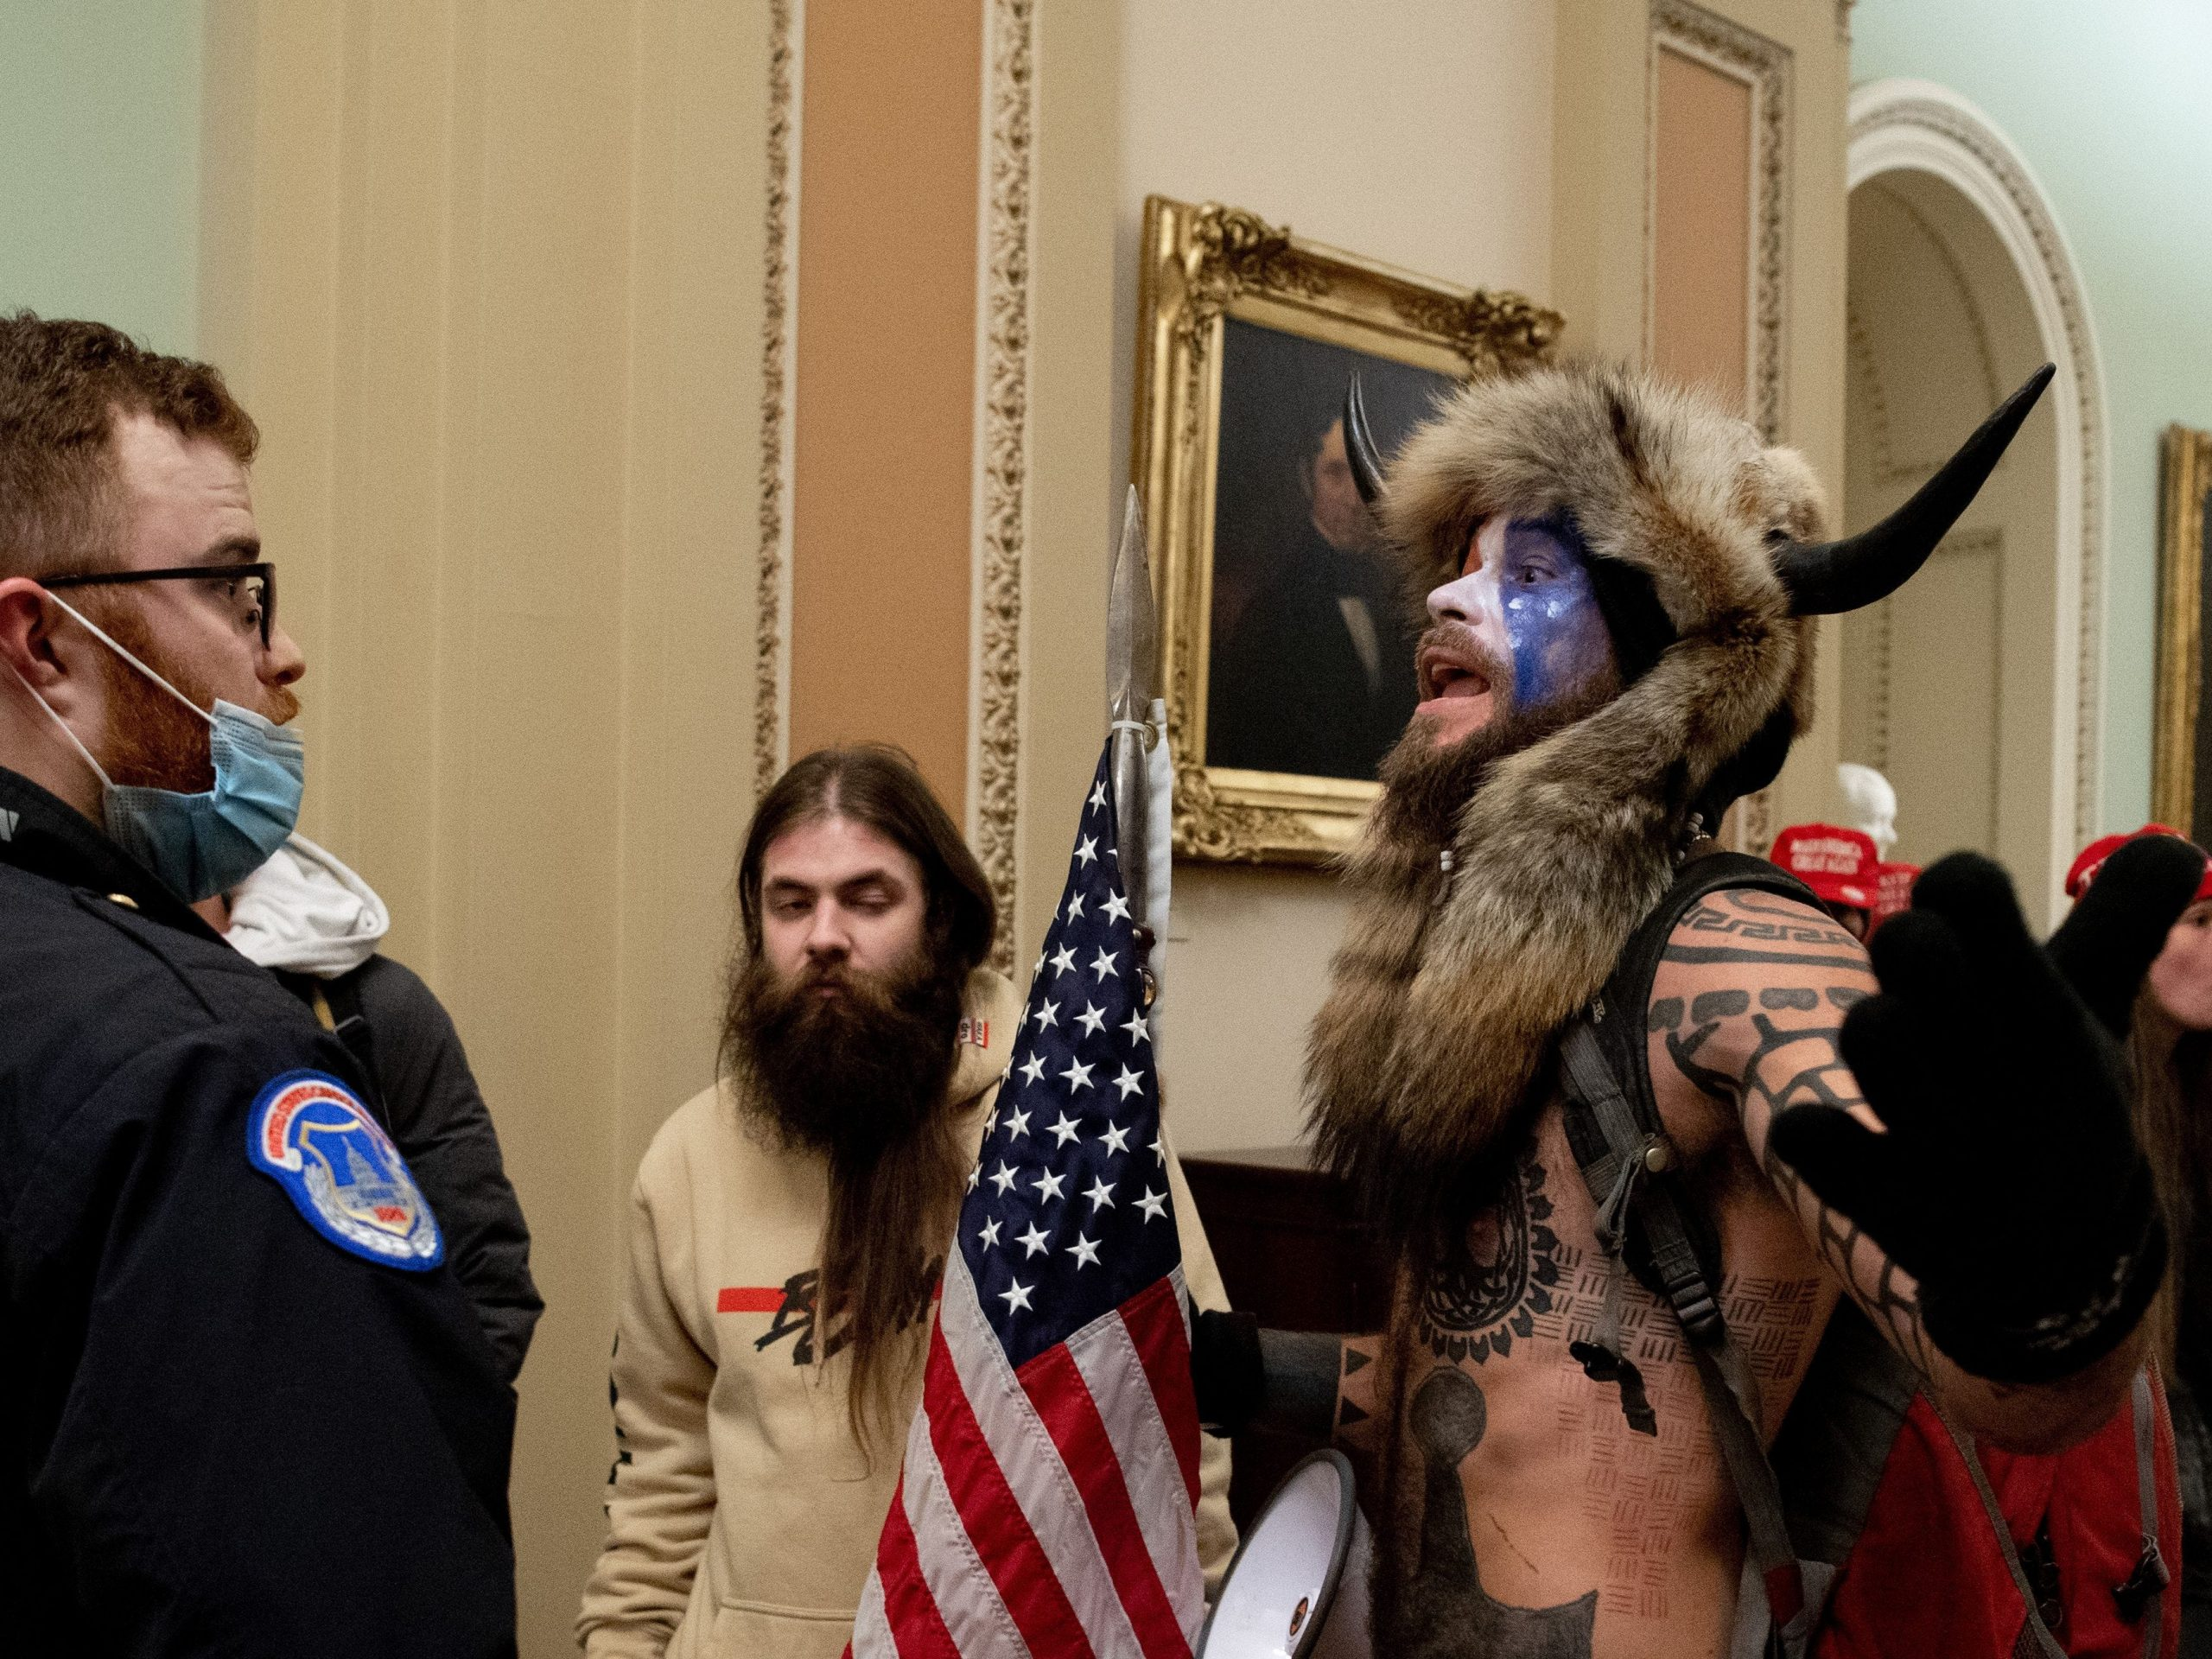 Criminal knowledgeable for the 'Q Shaman' who stormed the Capitol in a fur headdress with horns says his client feels 'duped' after Trump did now not pardon him